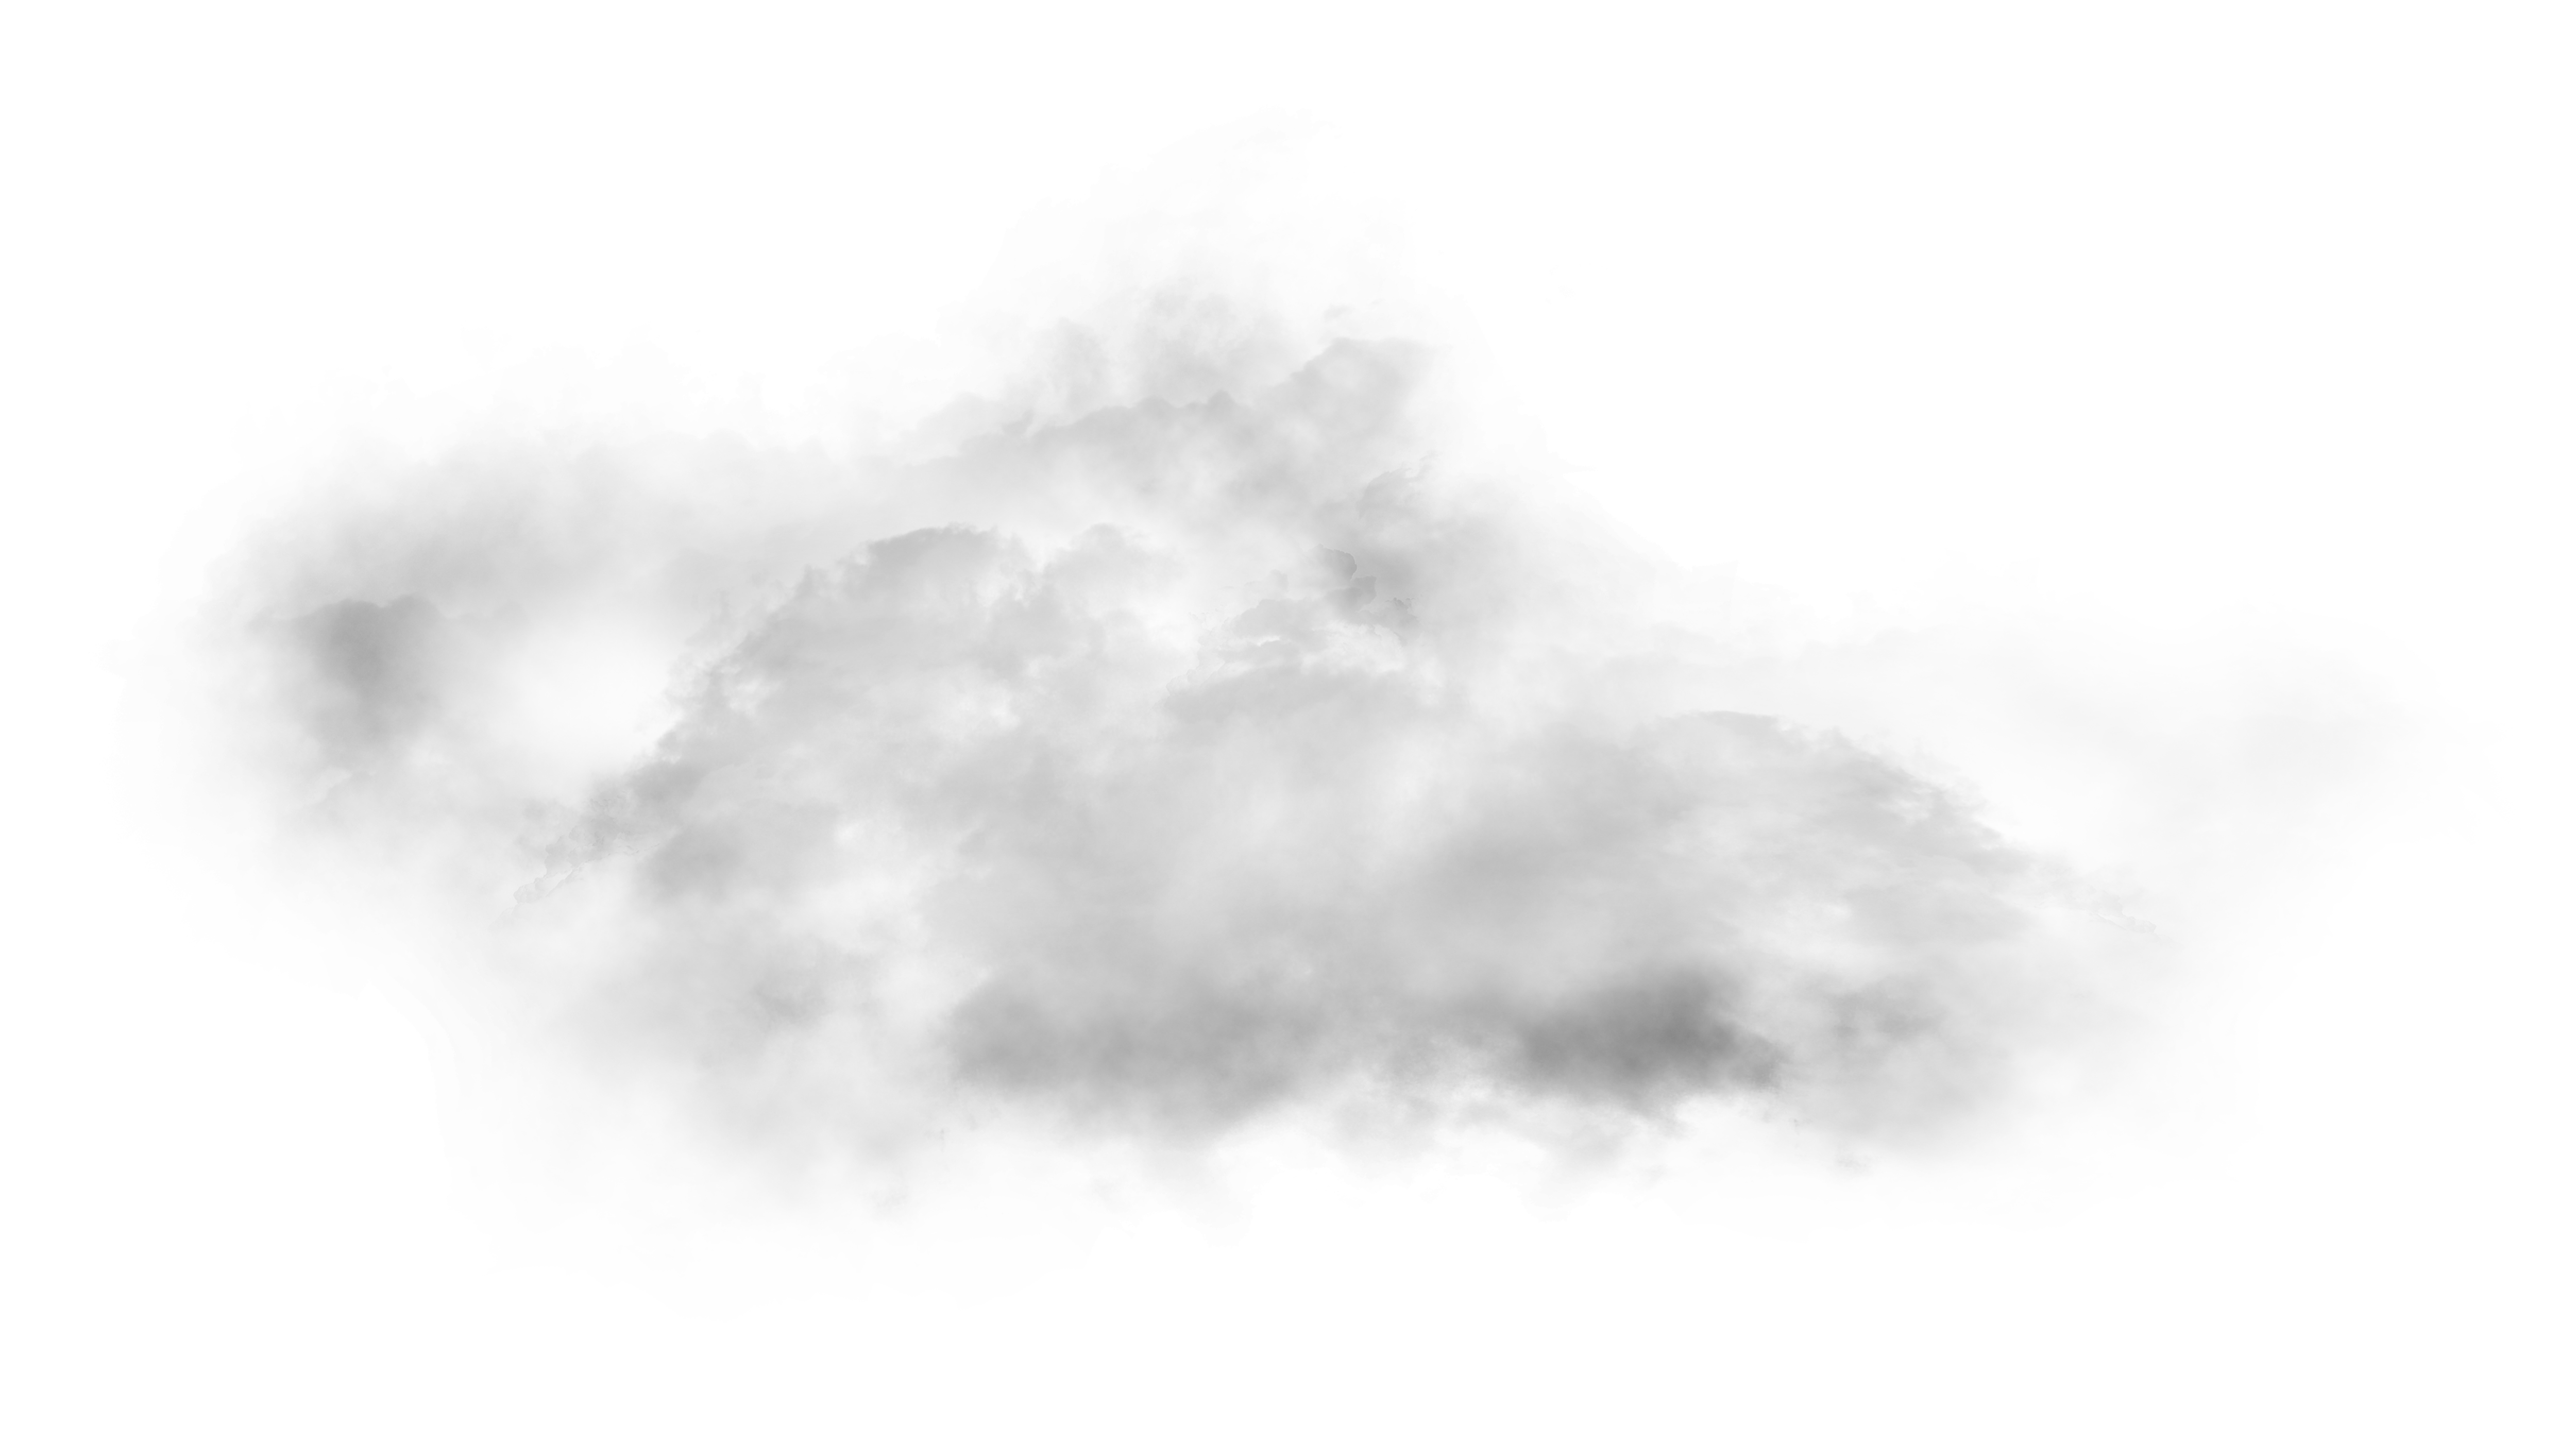 219 Cloud Png free clipart.